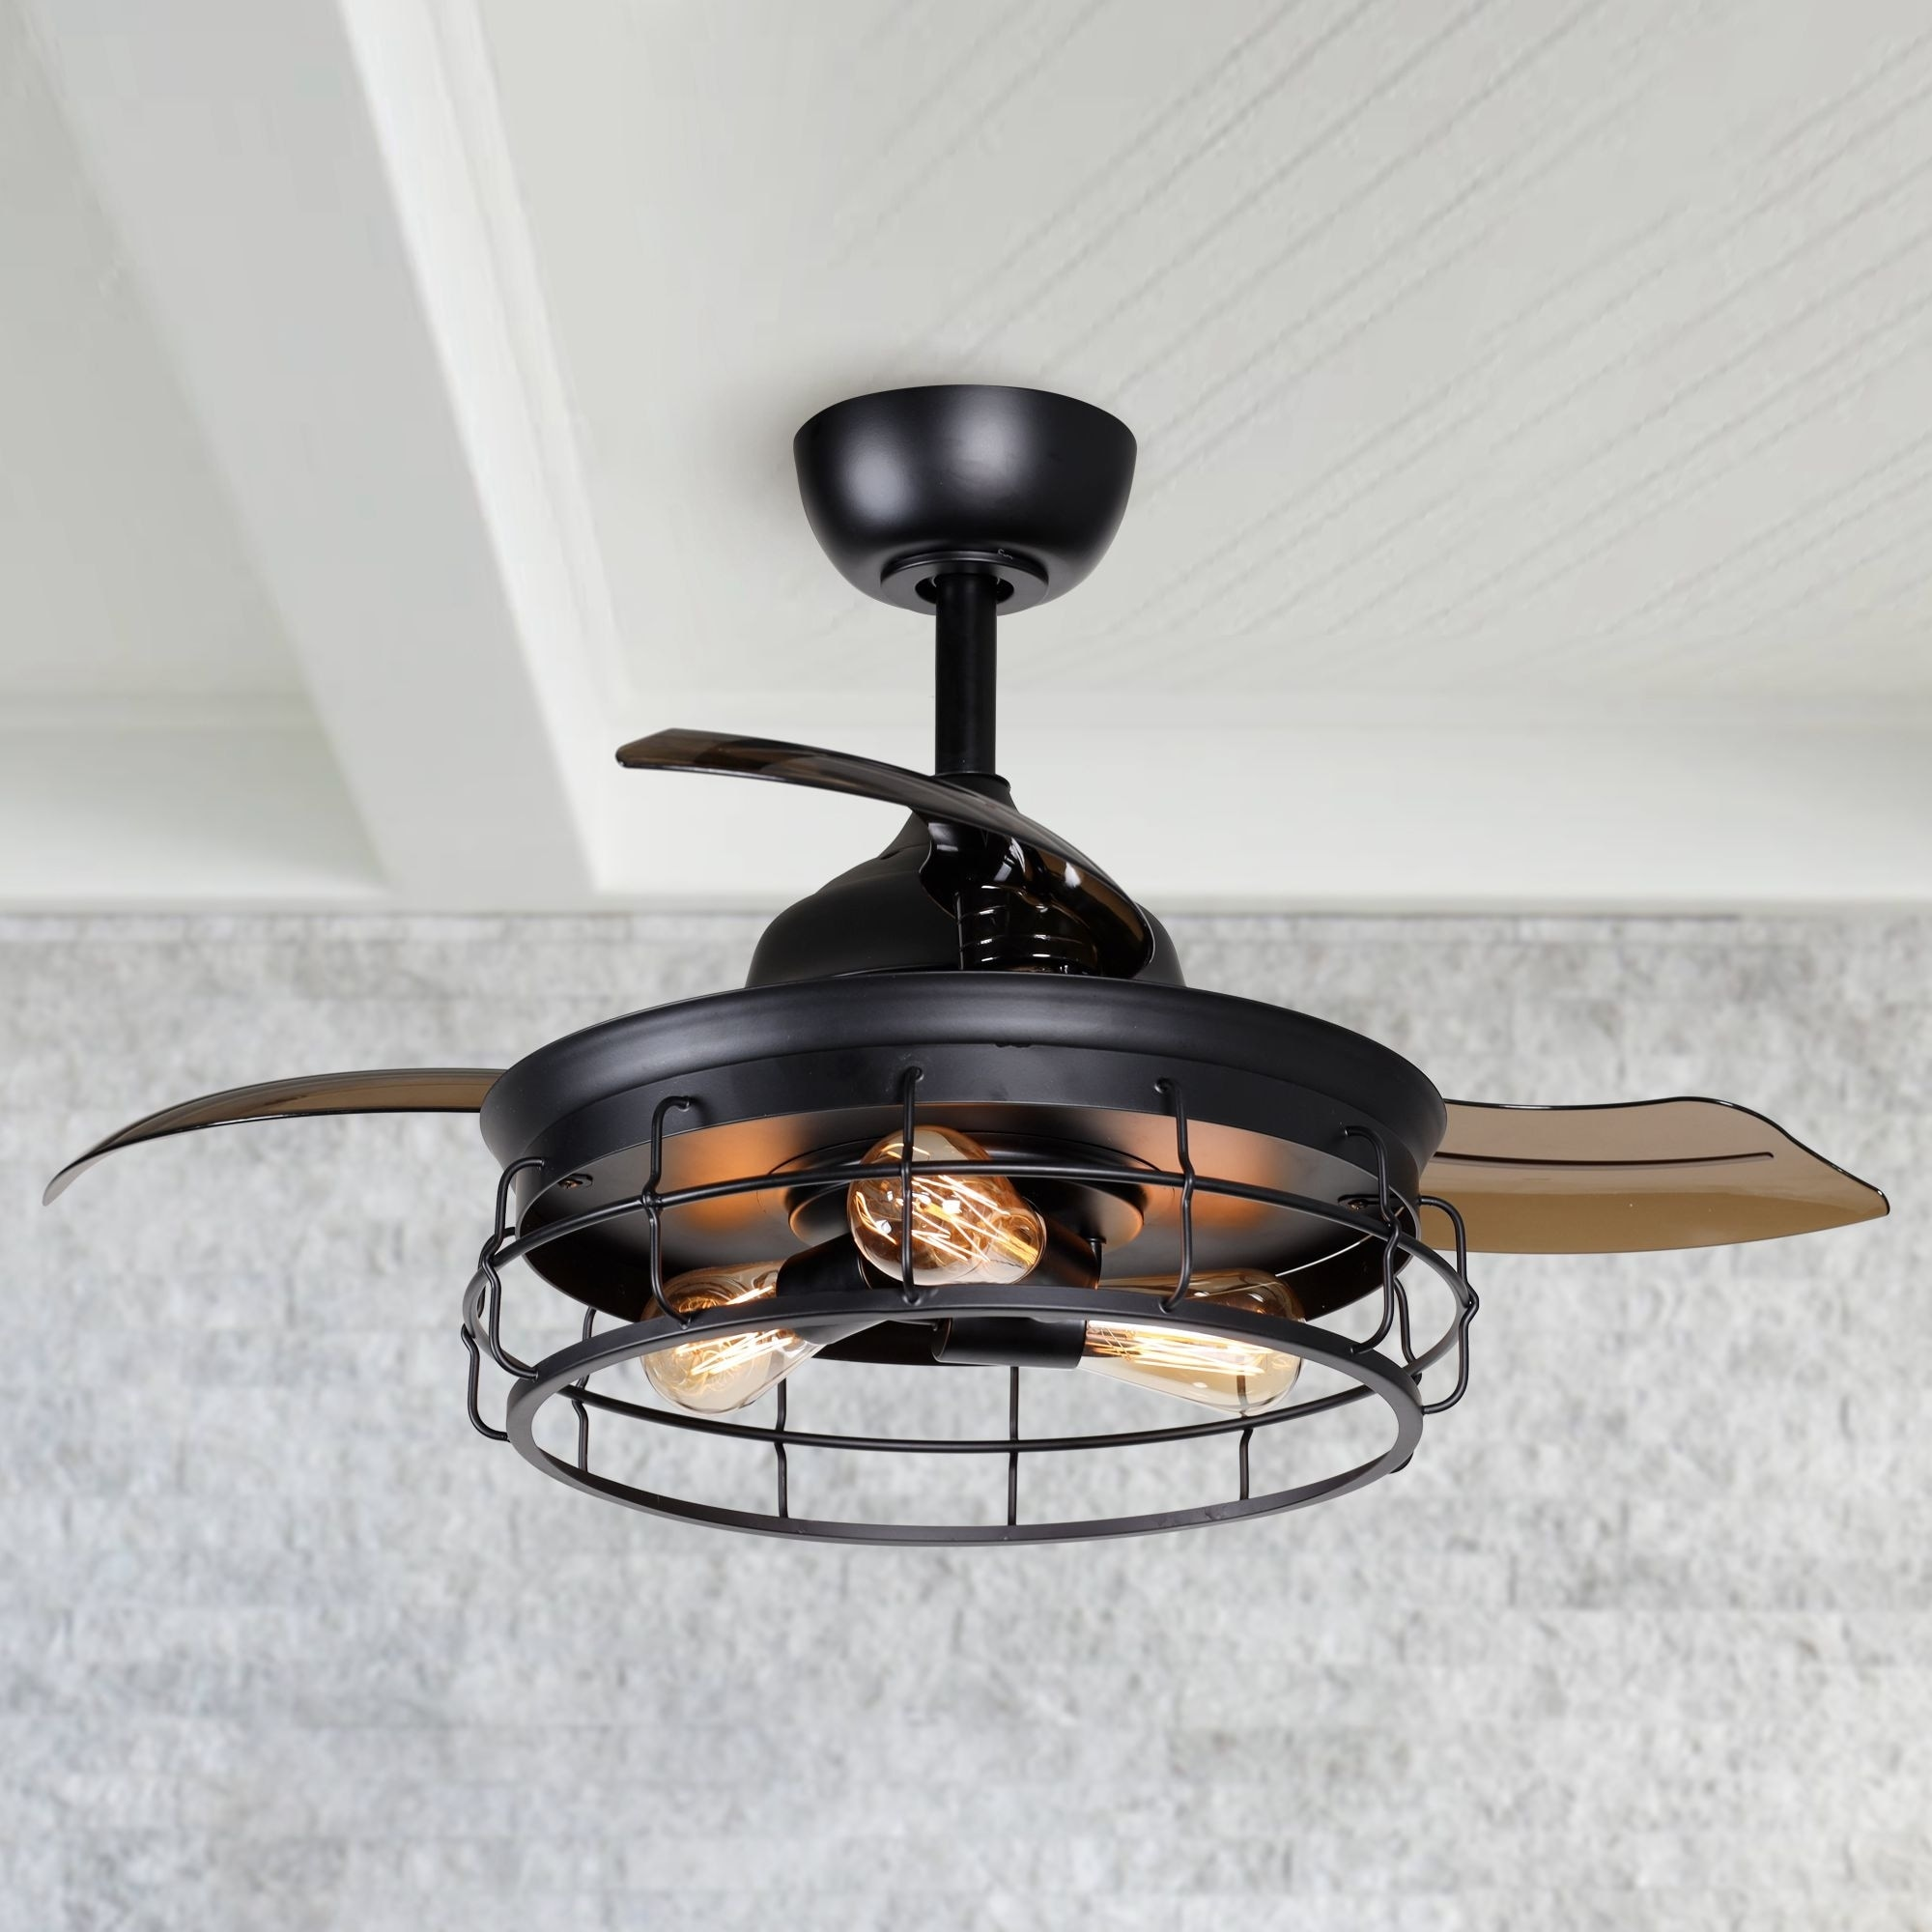 Industrial 36 Inch Black 3 Blade Ceiling Fan With Light Kit 36 In On Sale Overstock 31606587